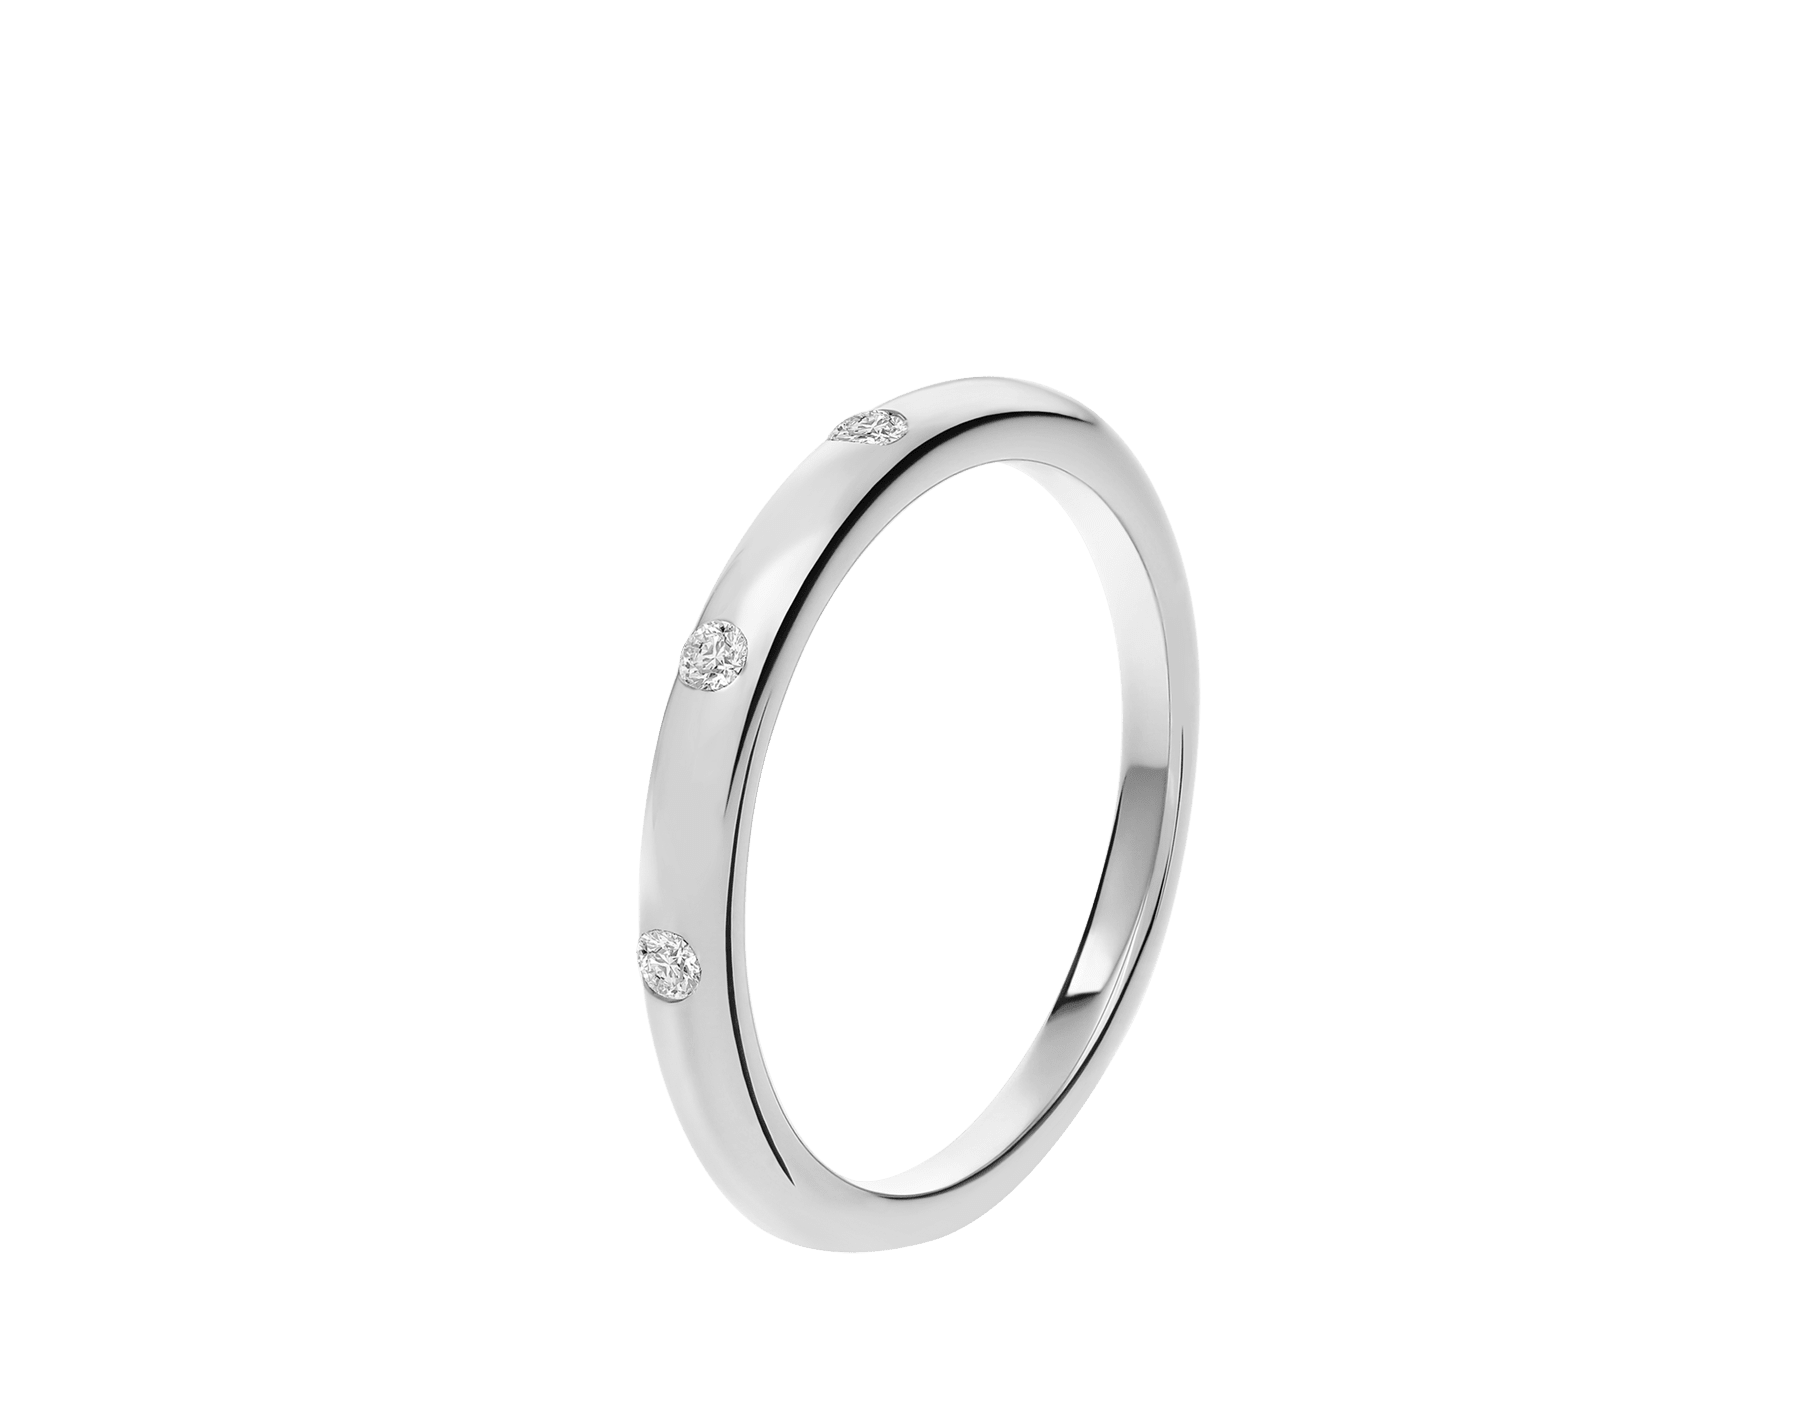 Fedi Wedding Band in platinum set with three diamonds AN857433 image 1